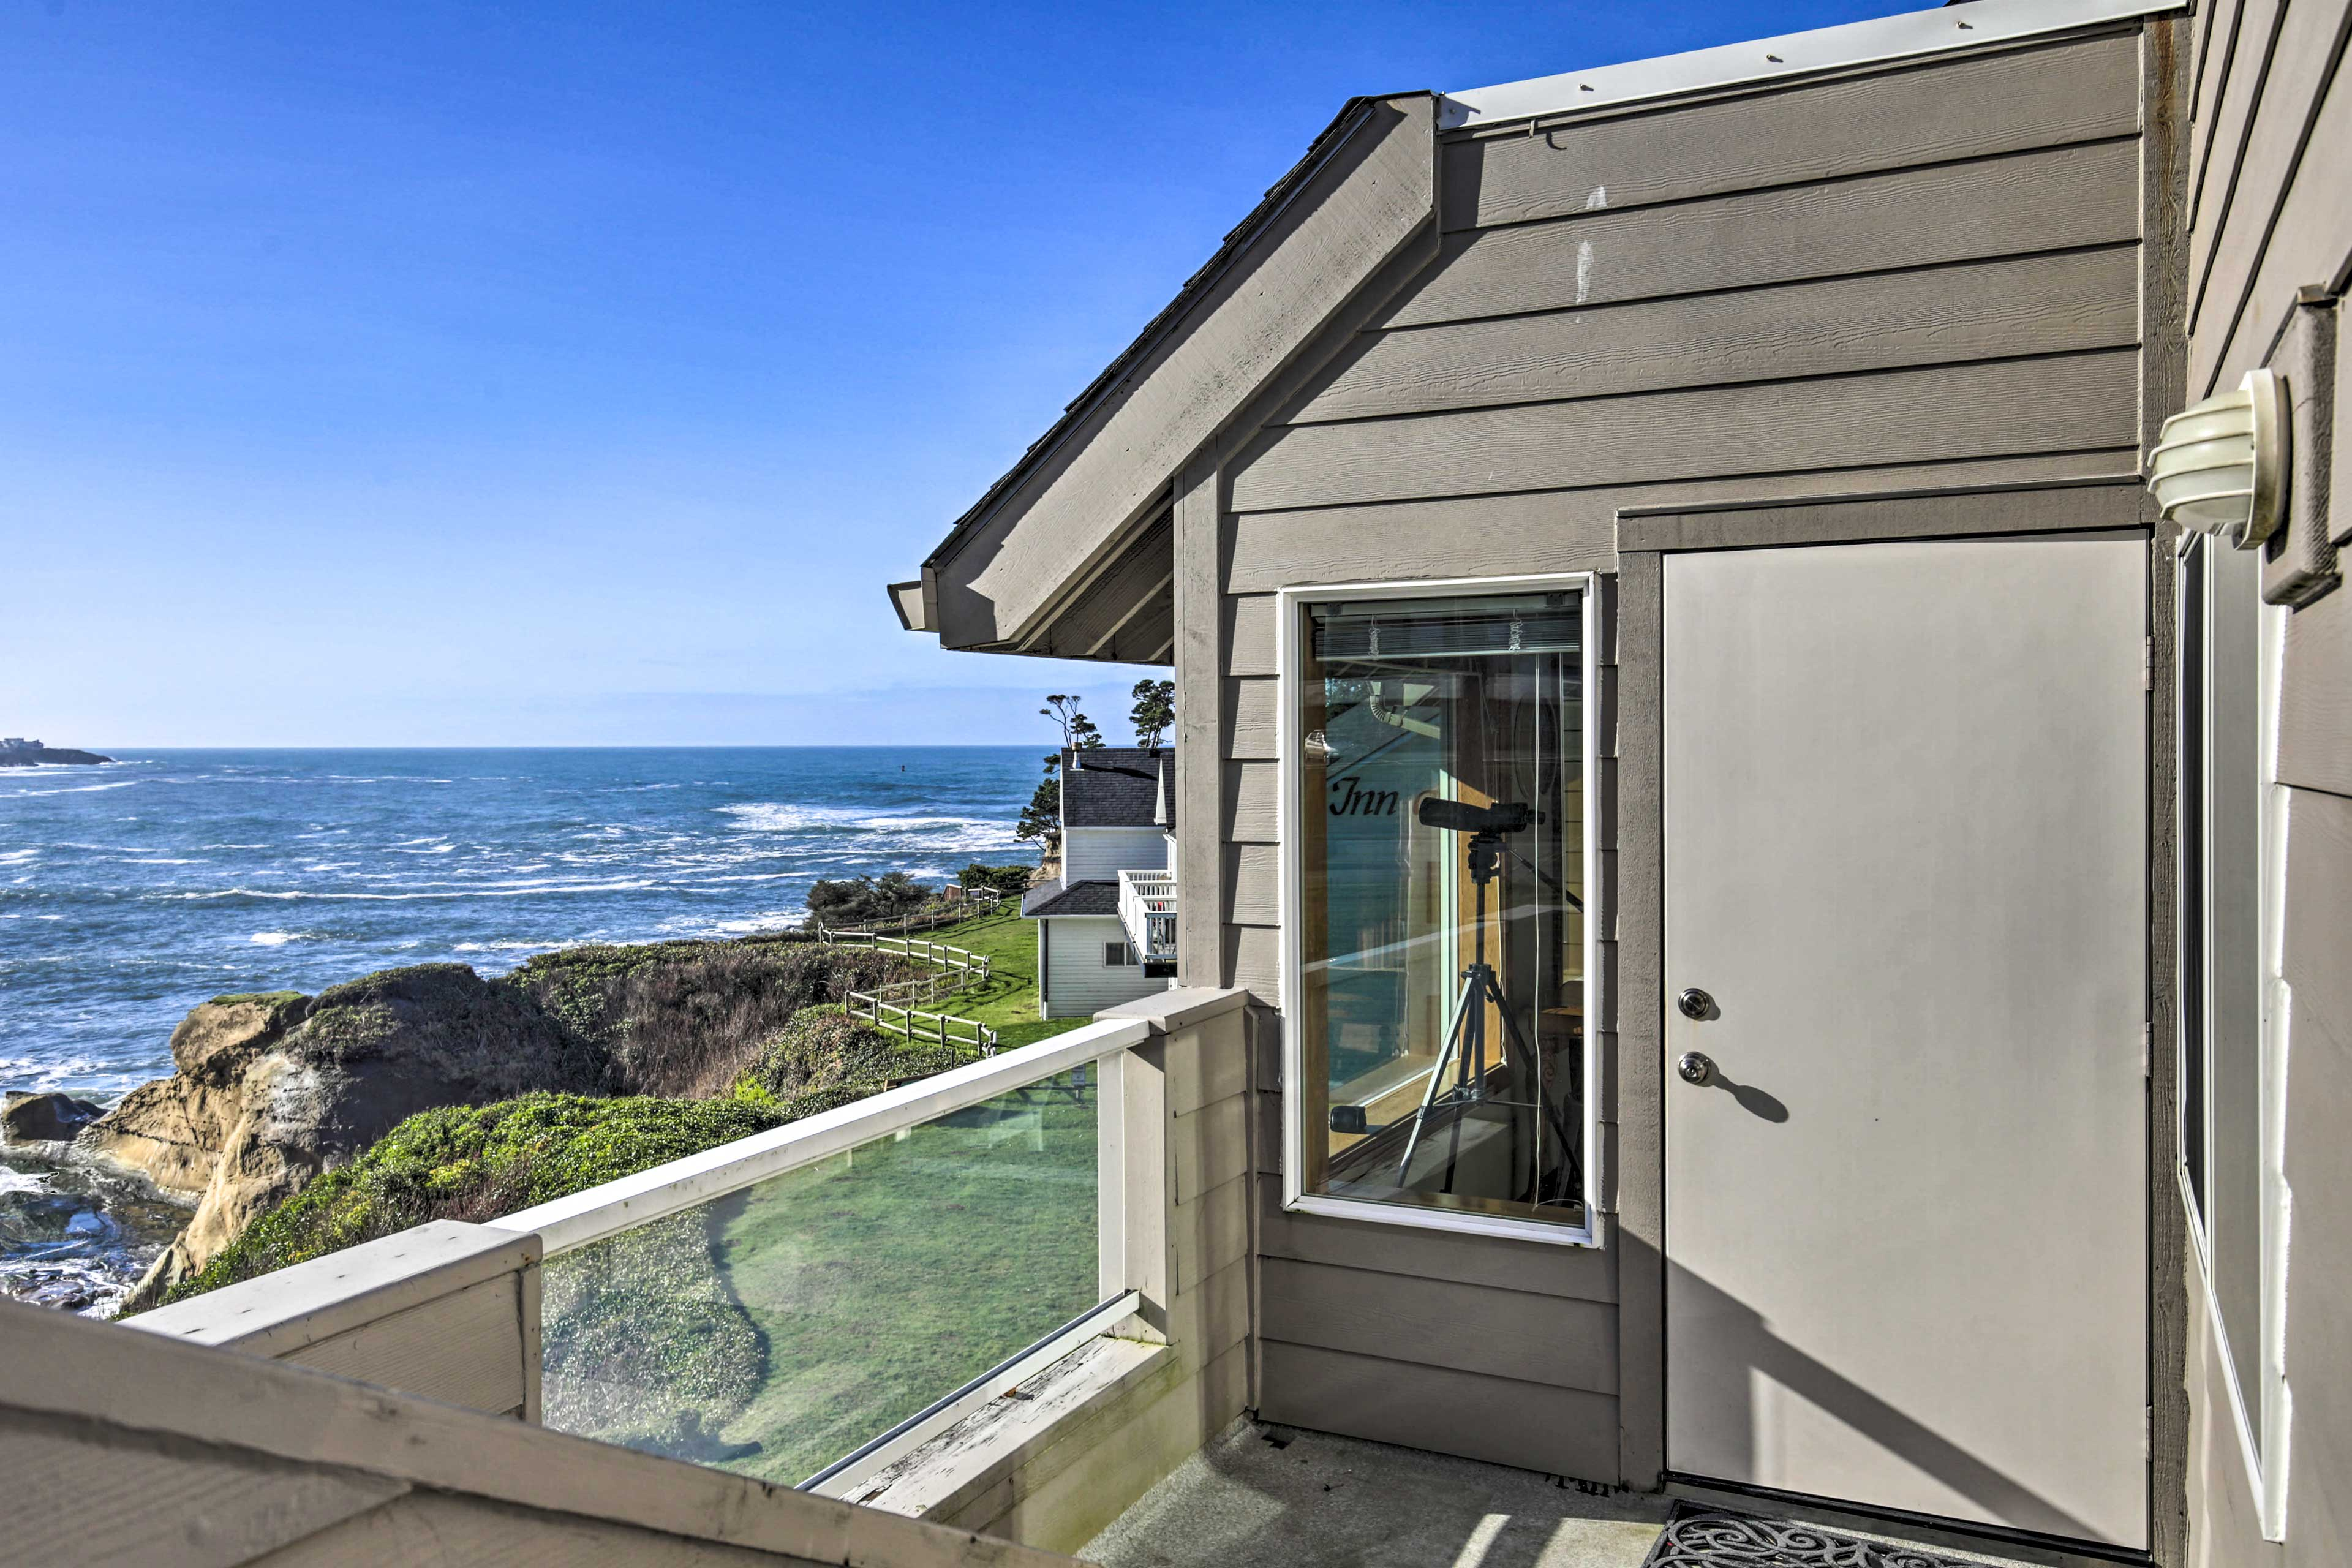 Enjoy panoramic ocean views from the private balcony.